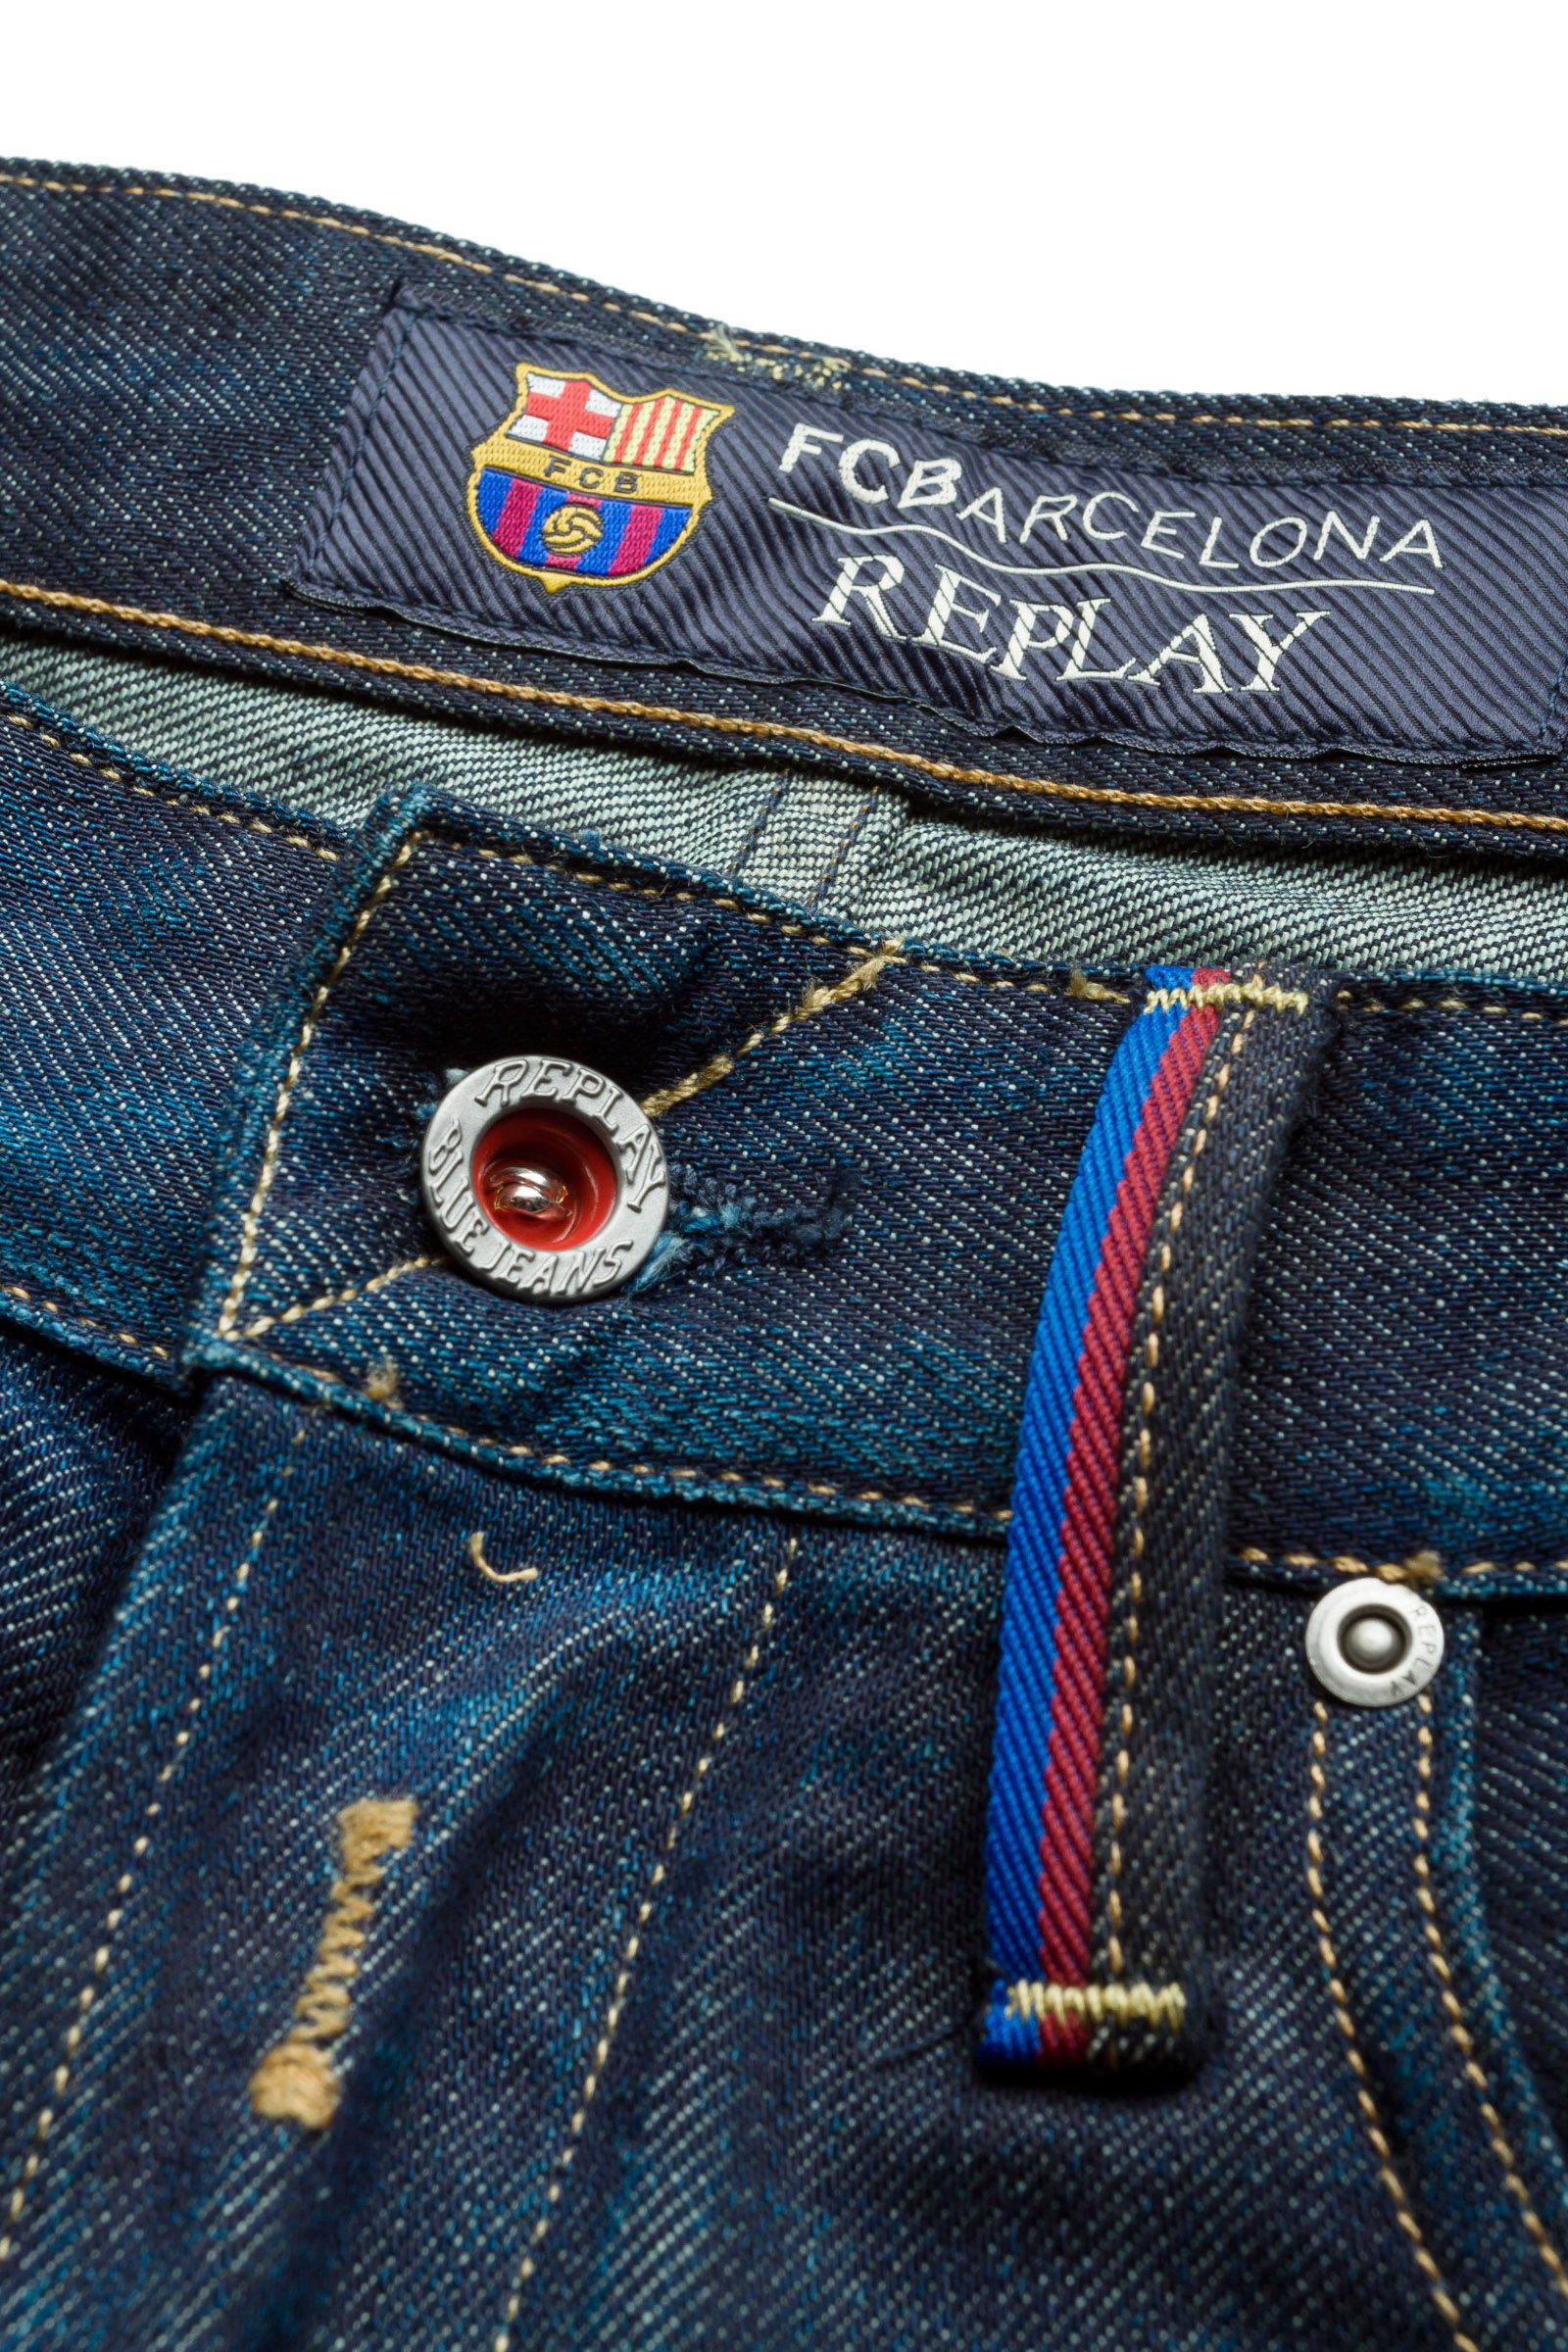 To mark the partnership with #Barcelona Football Club, #REPLAY invents the #denimzero, an ice treatment for one of the brand's bestselling style of jeans. A special type of abrasion using ice particles creates an intense used effect, so imbuing the season's must-have denims with a latest-generation green appeal.